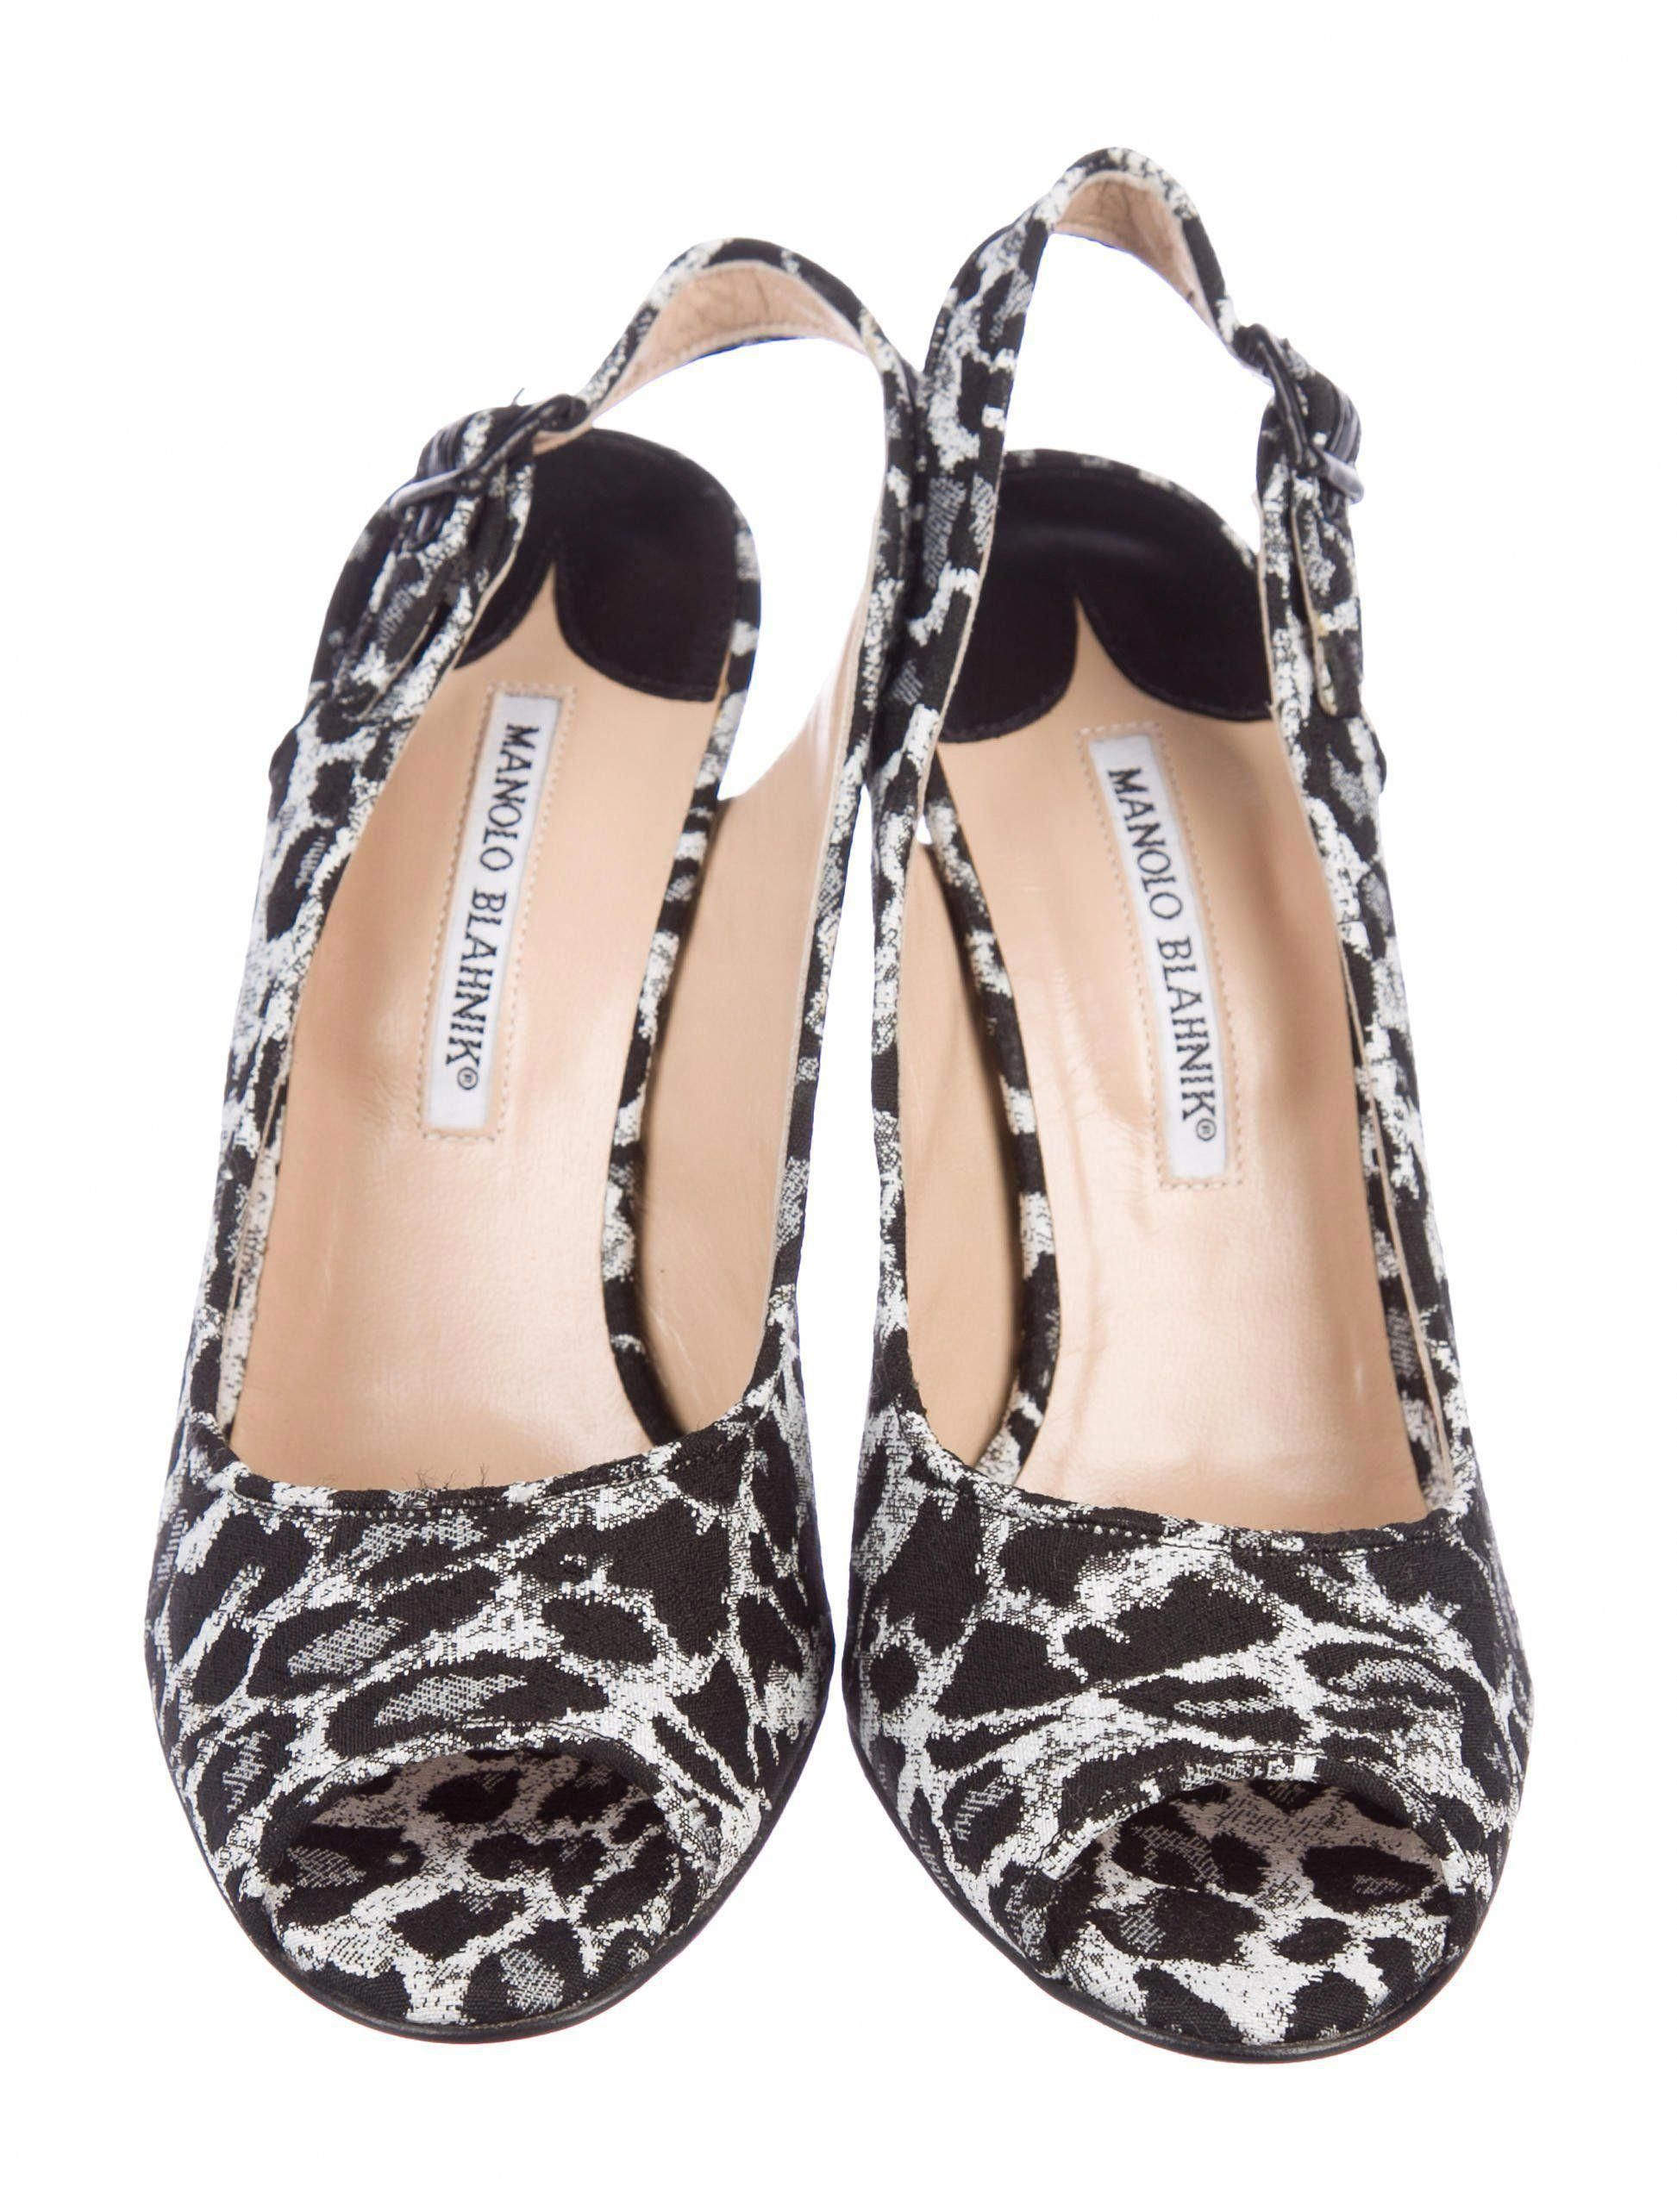 d6789601d1b Black and grey canvas Manolo Blahnik peep-toe slingback pumps with ...